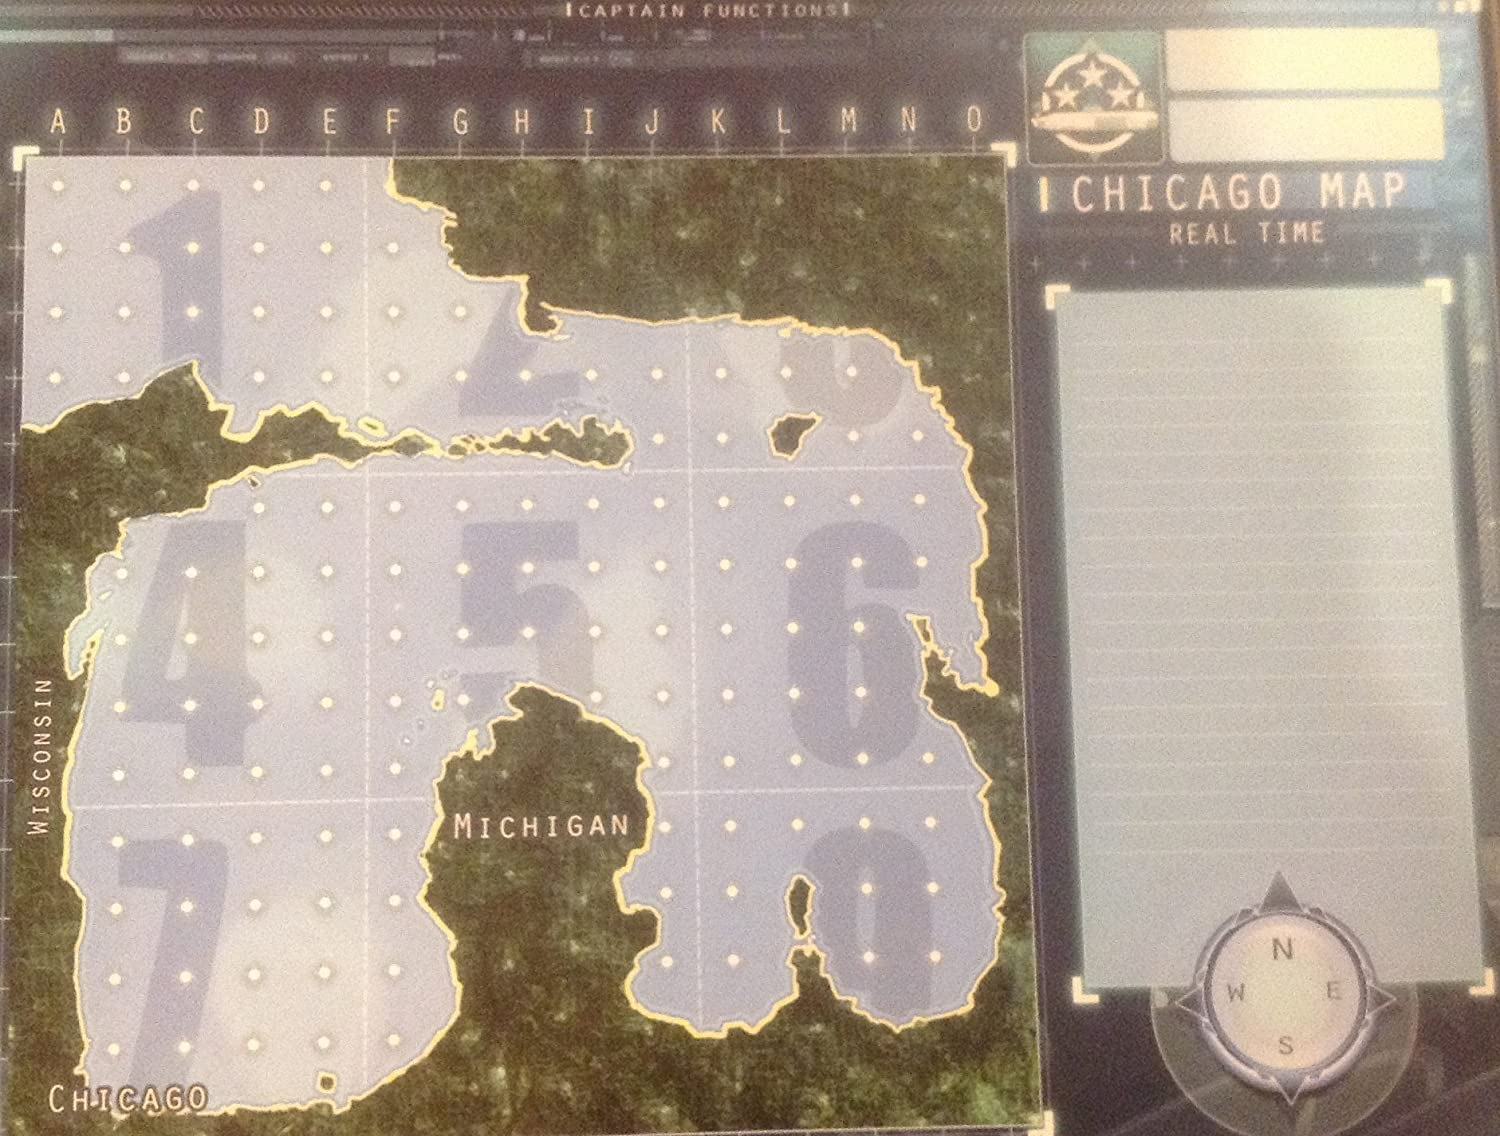 Amazoncom Captain Sonar Board Game Extra Maps Chicago Map - Chicago map new york